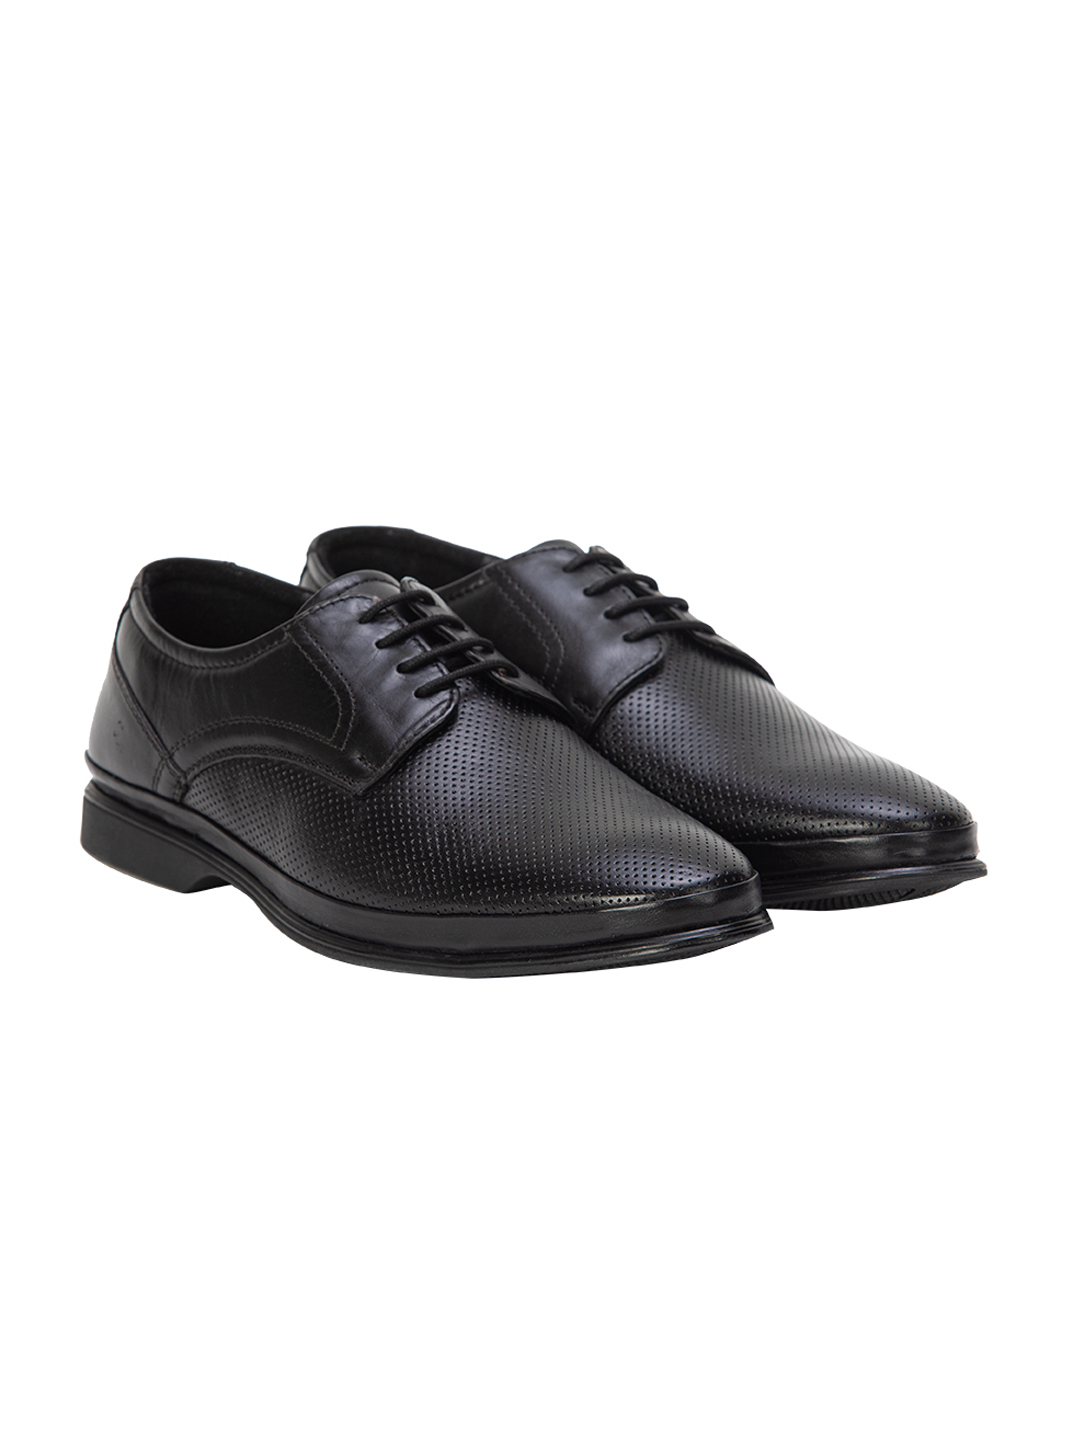 Buy Von Wellx Germany Comfort Black Coen Shoes Online in Gujarat